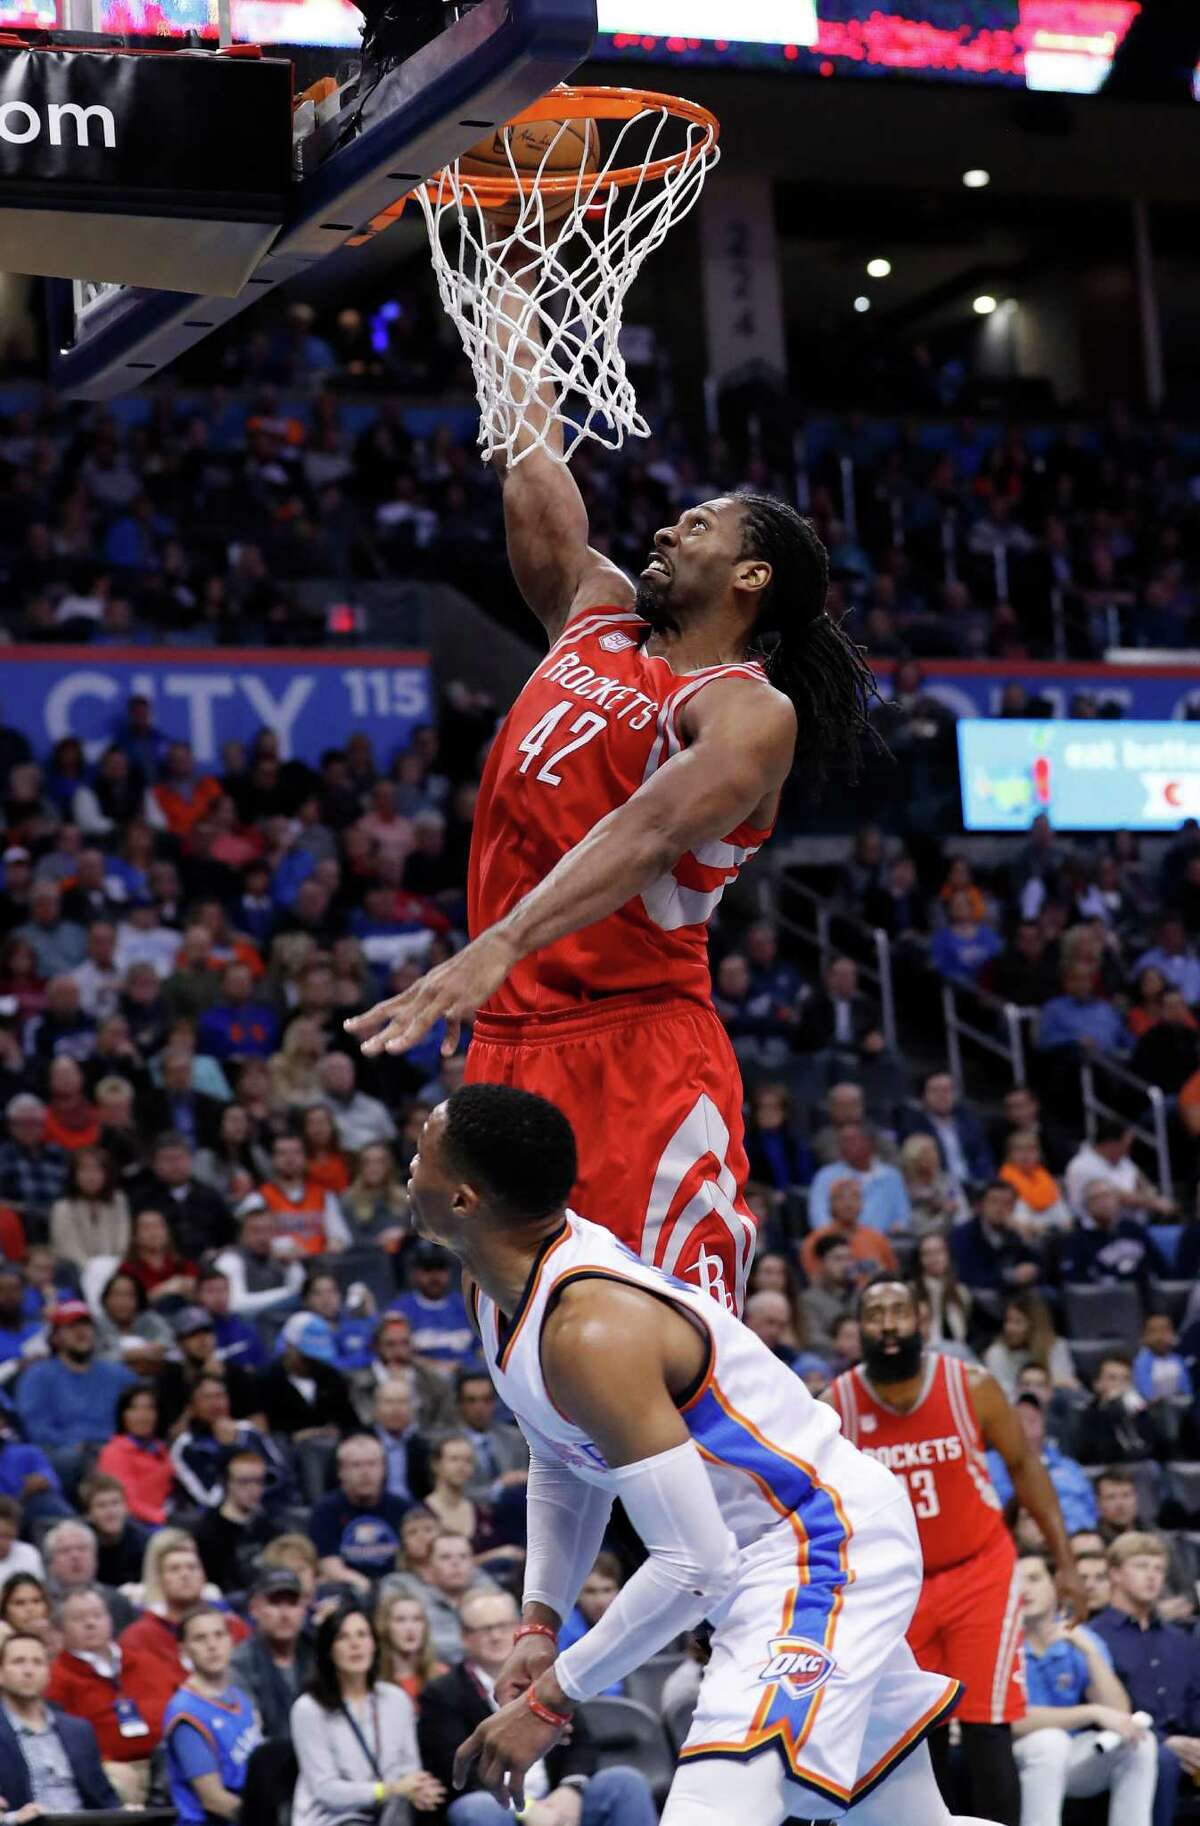 Rockets center Nene goes up for a dunk over Thunder guard Russell Westbrook during the first half Friday night. Nene finished with 11 points.